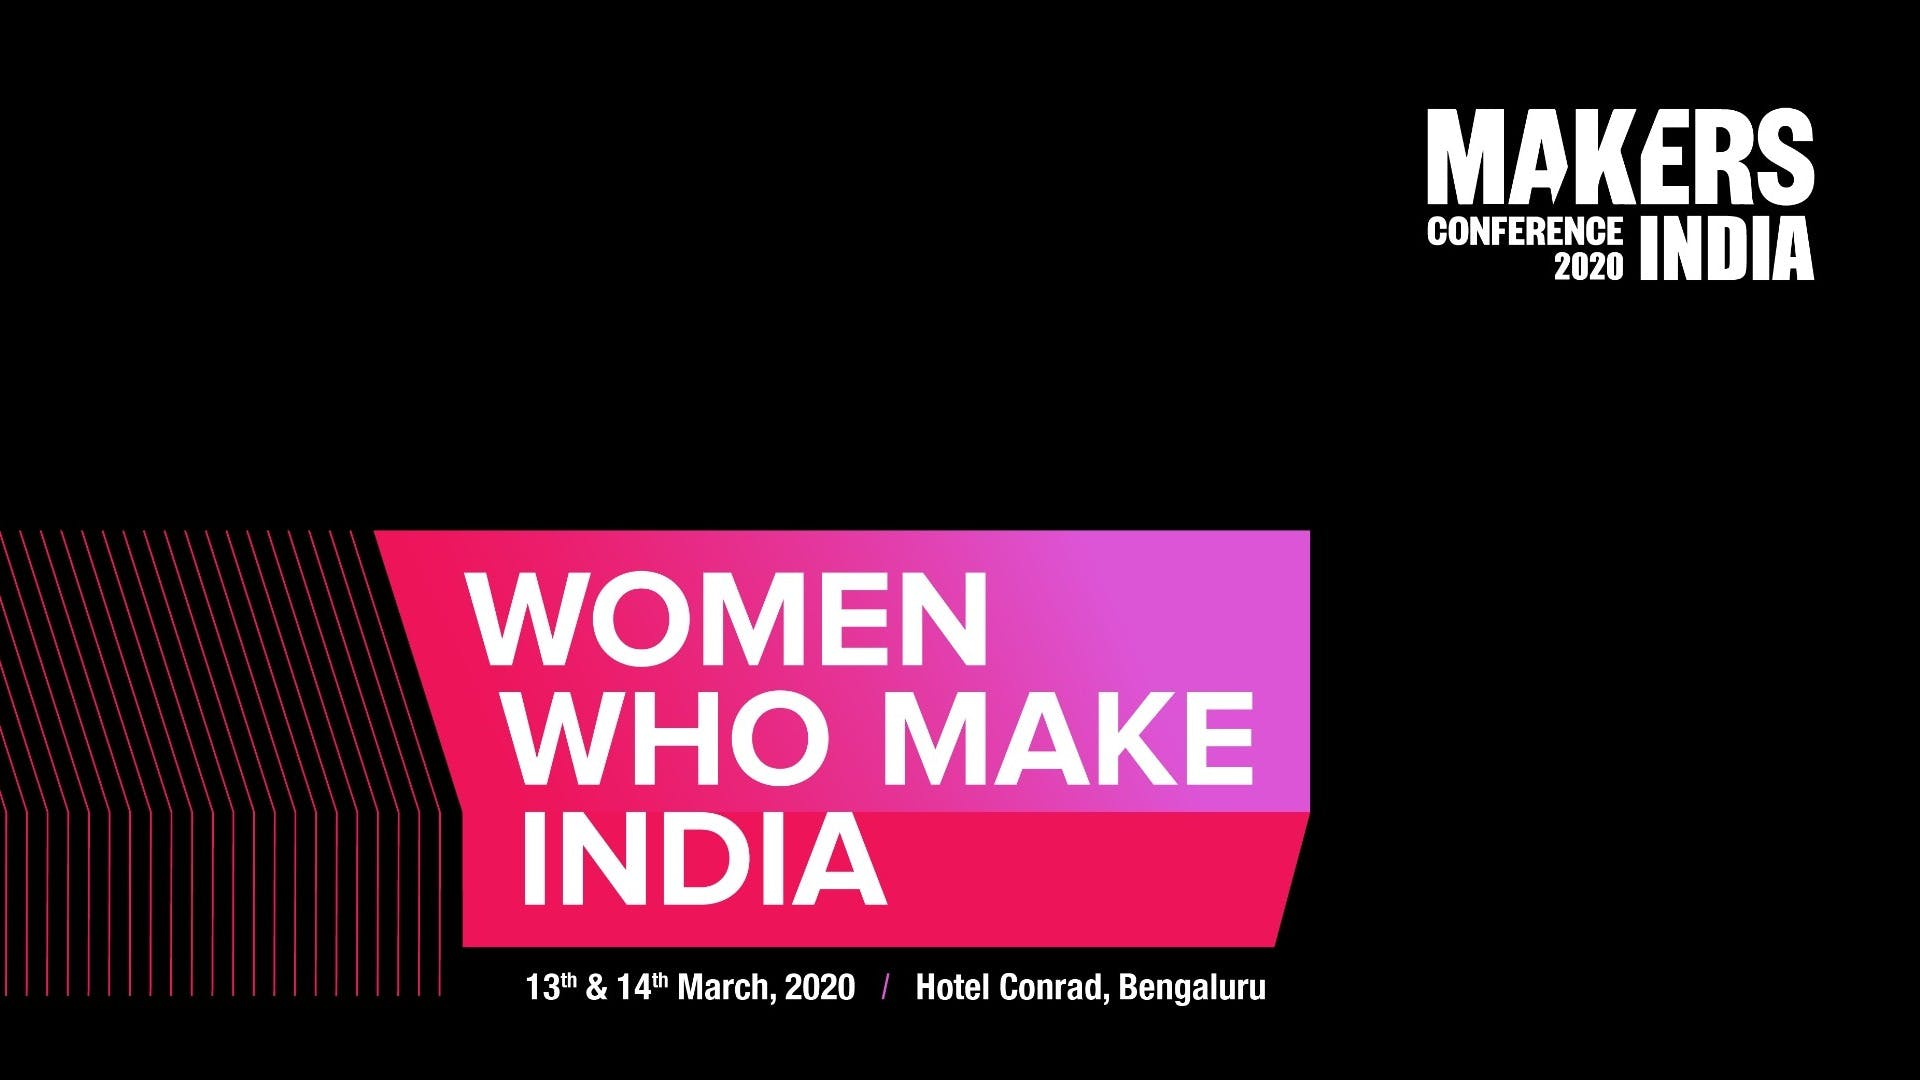 MAKERS India Conference 2020